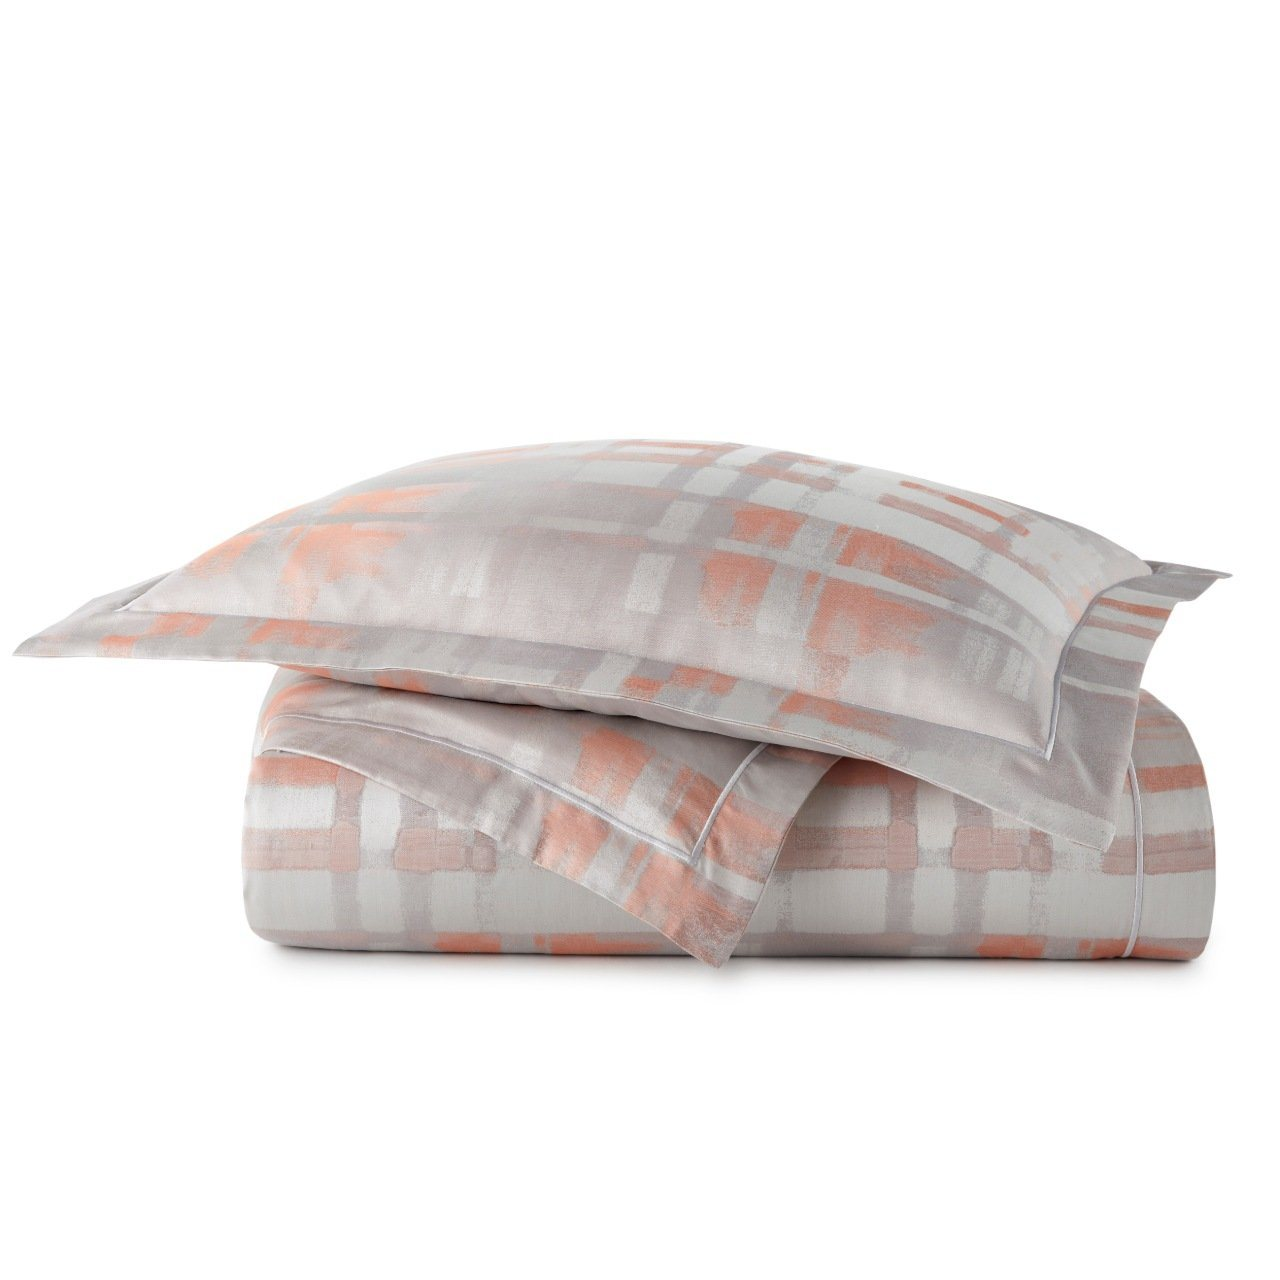 stack of Enzo duvet cover and sham in coral